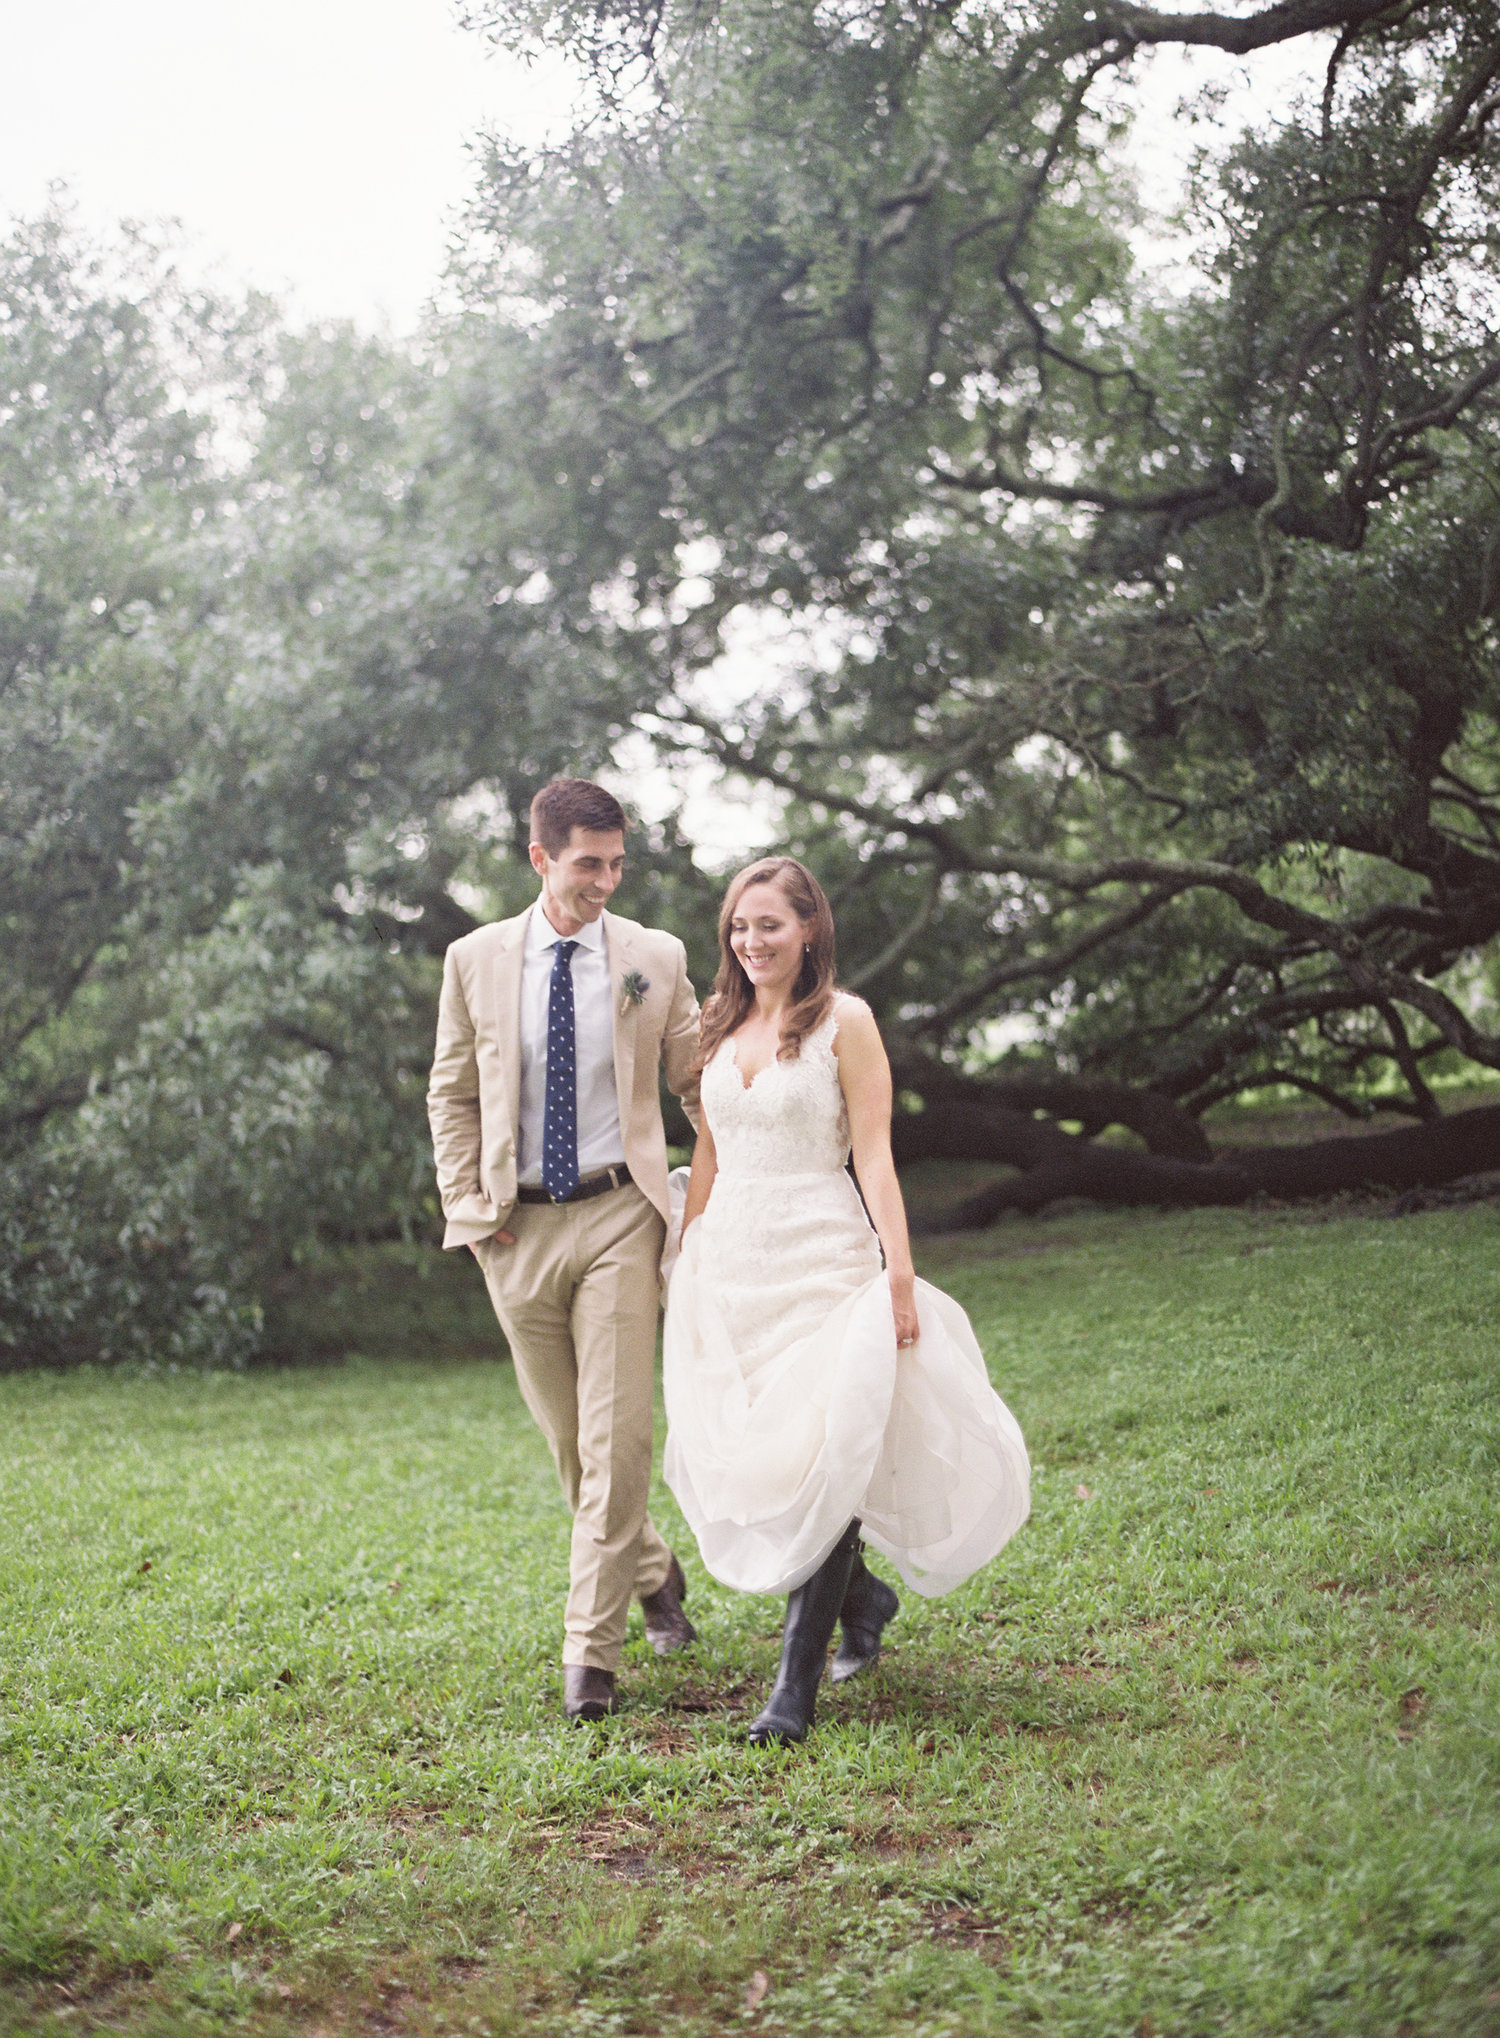 Bride and groom in their wedding dress and suite walking through the park with oak trees in the background